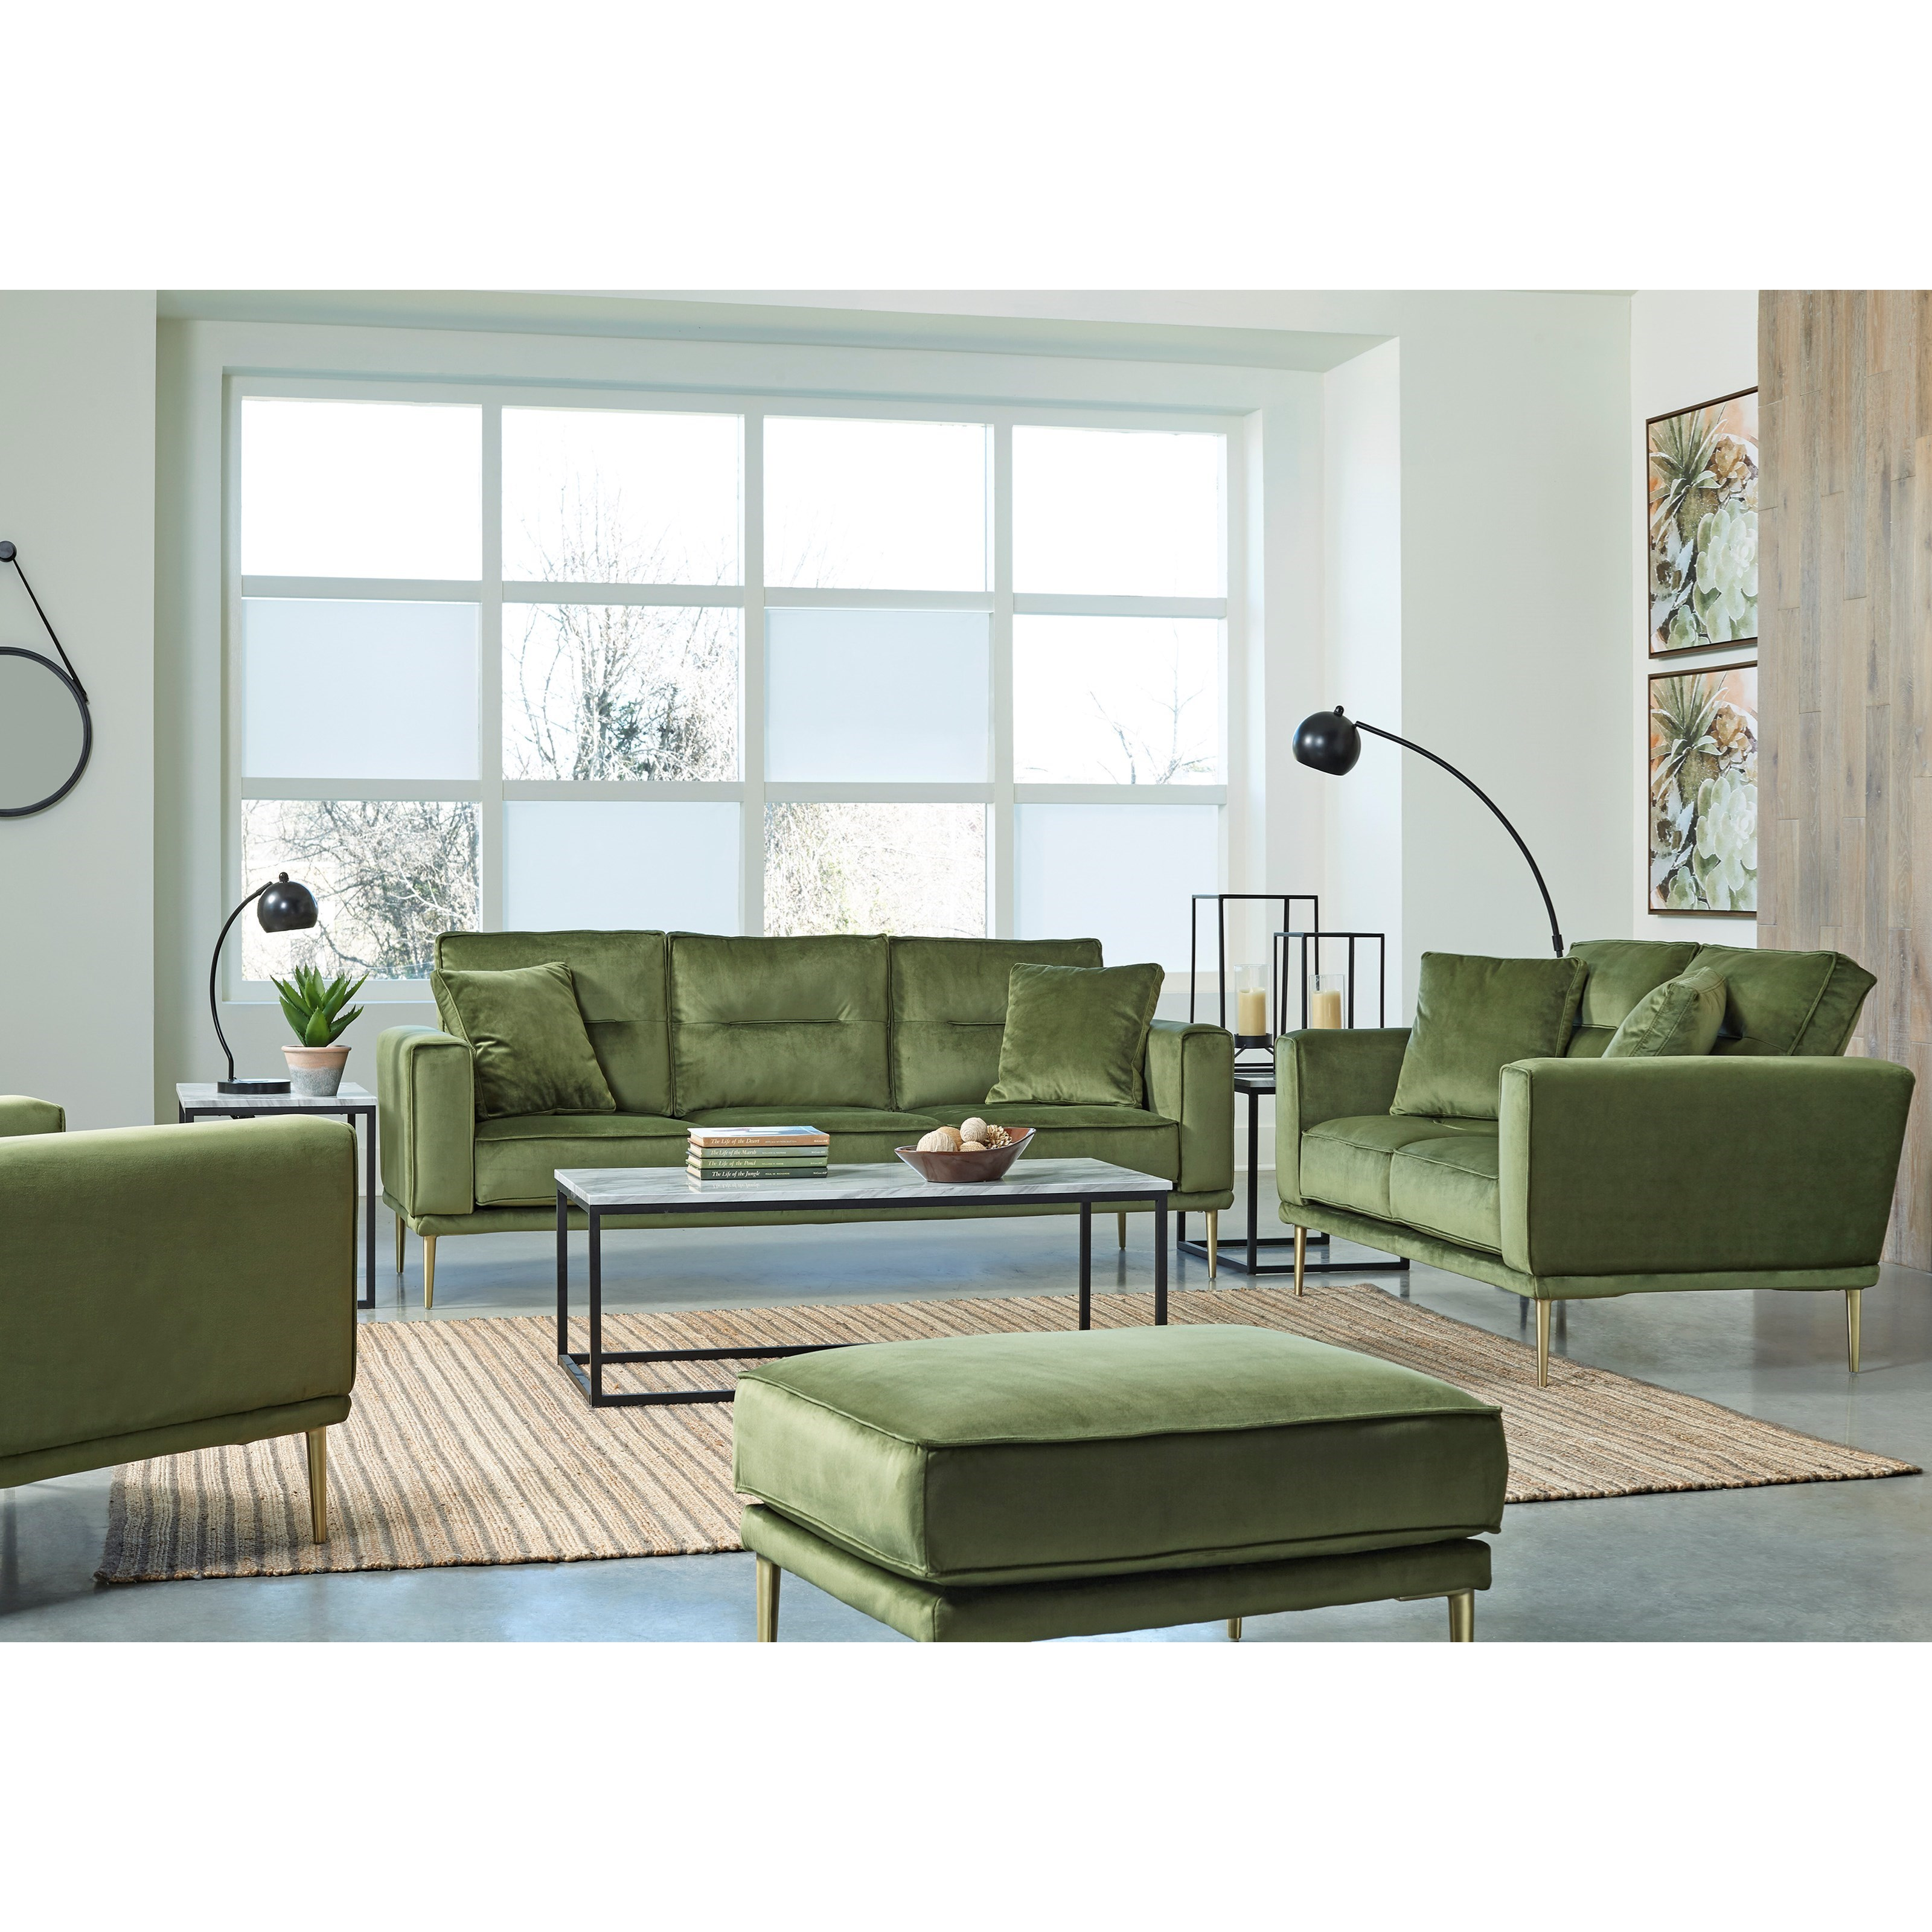 Macleary Living Room Group by Signature Design by Ashley at Northeast Factory Direct